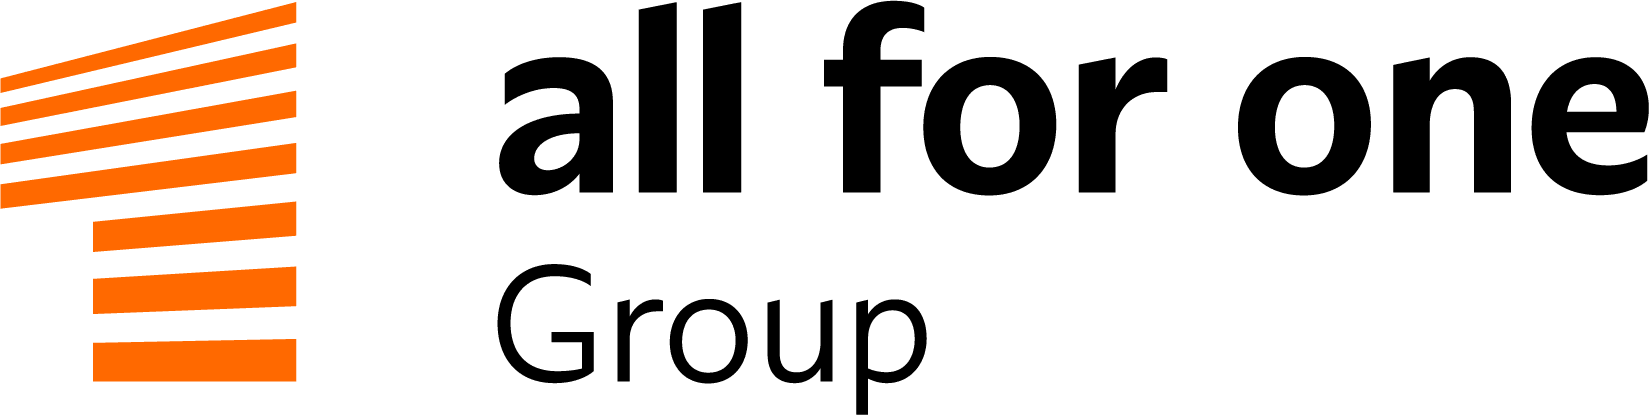 All_for_One_Group_RGB (1)